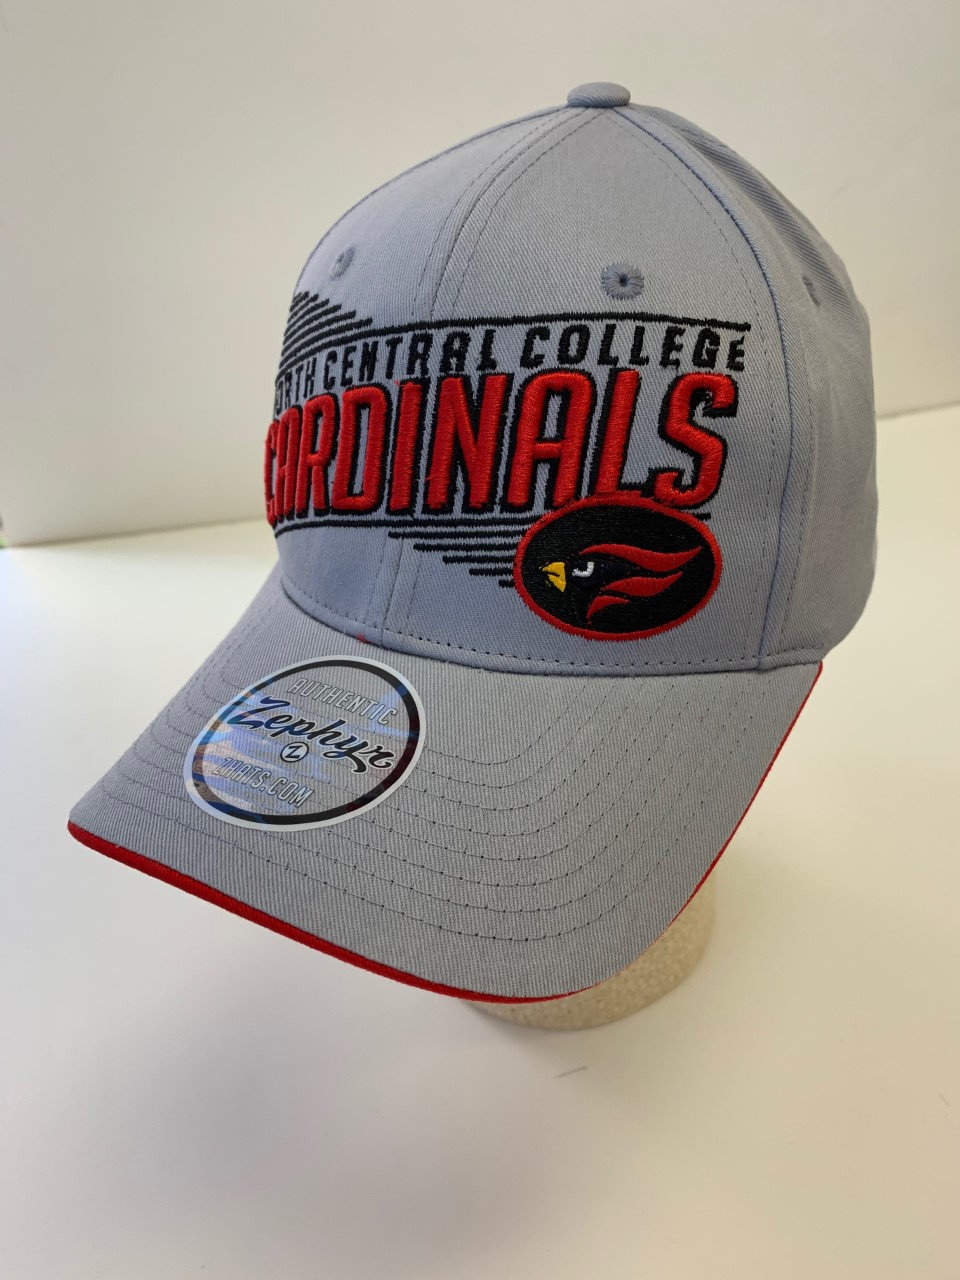 Image for the Zephyr Grey Snap Closure, Cardinals Hat product